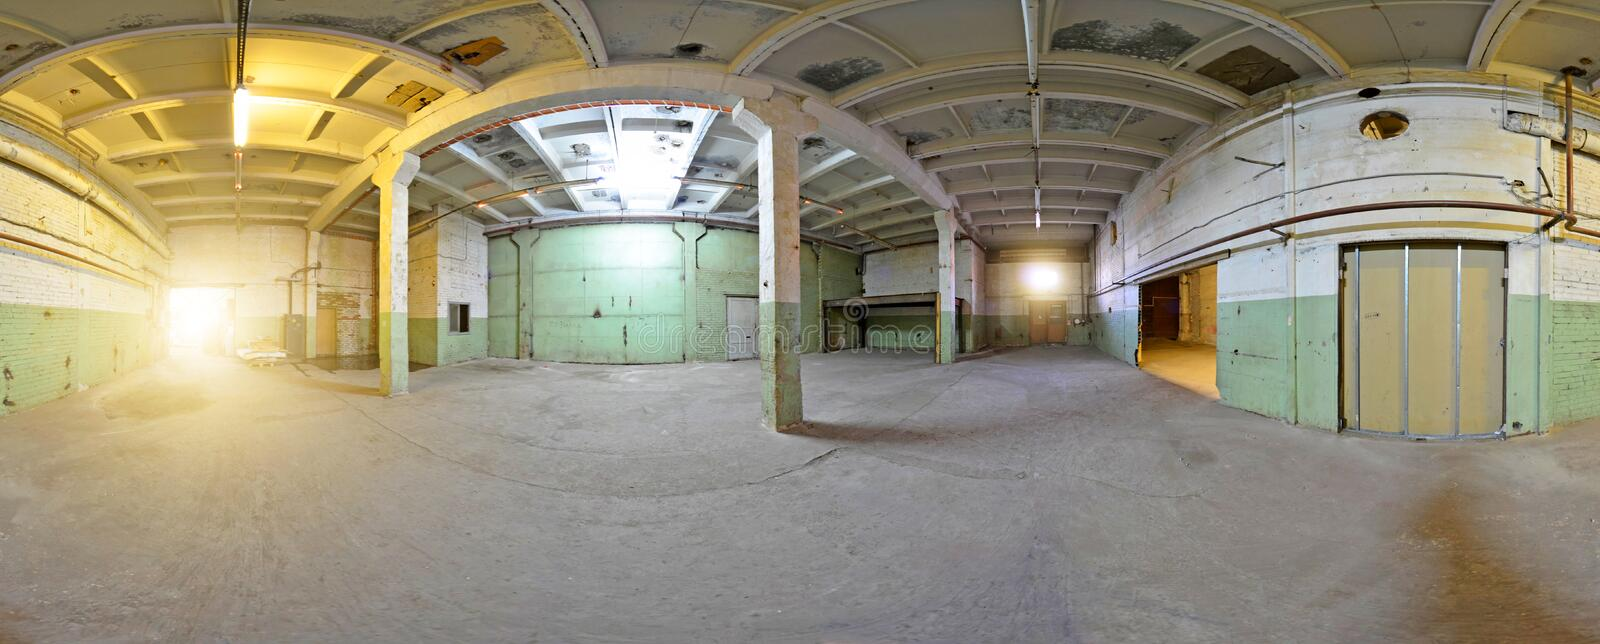 Spherical panorama inside abandoned building. Full 360 by 180 degree in equirectangular projection. stock photography